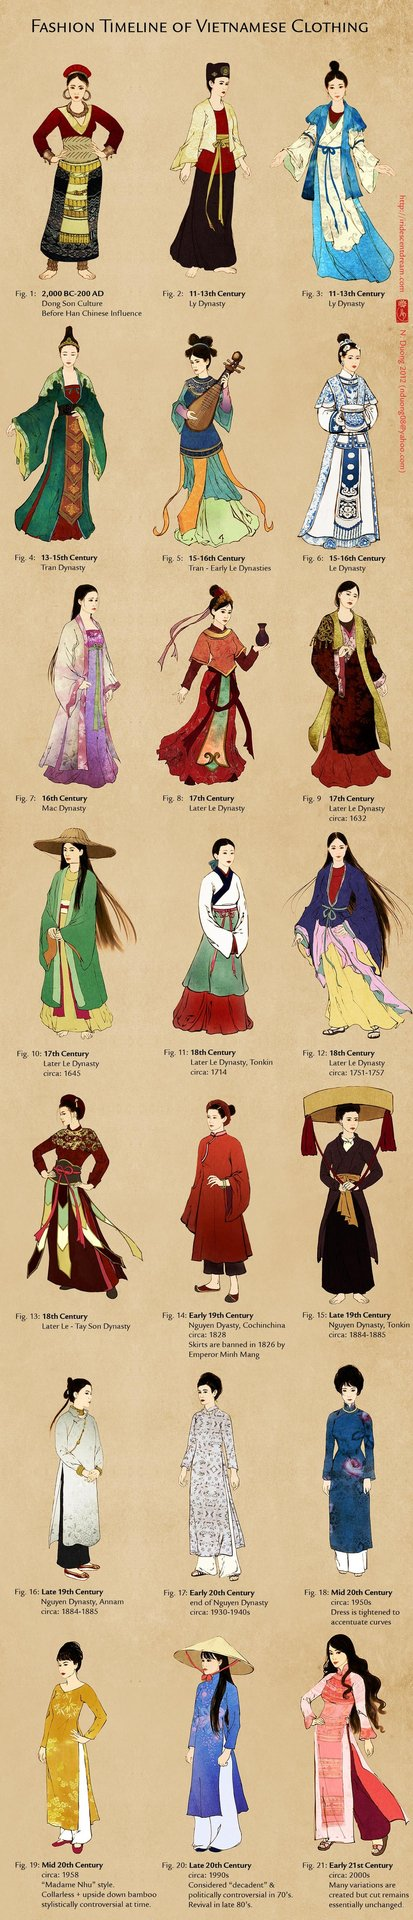 Fashion Timeline of Vietnamese Clothing on Non-Western ...